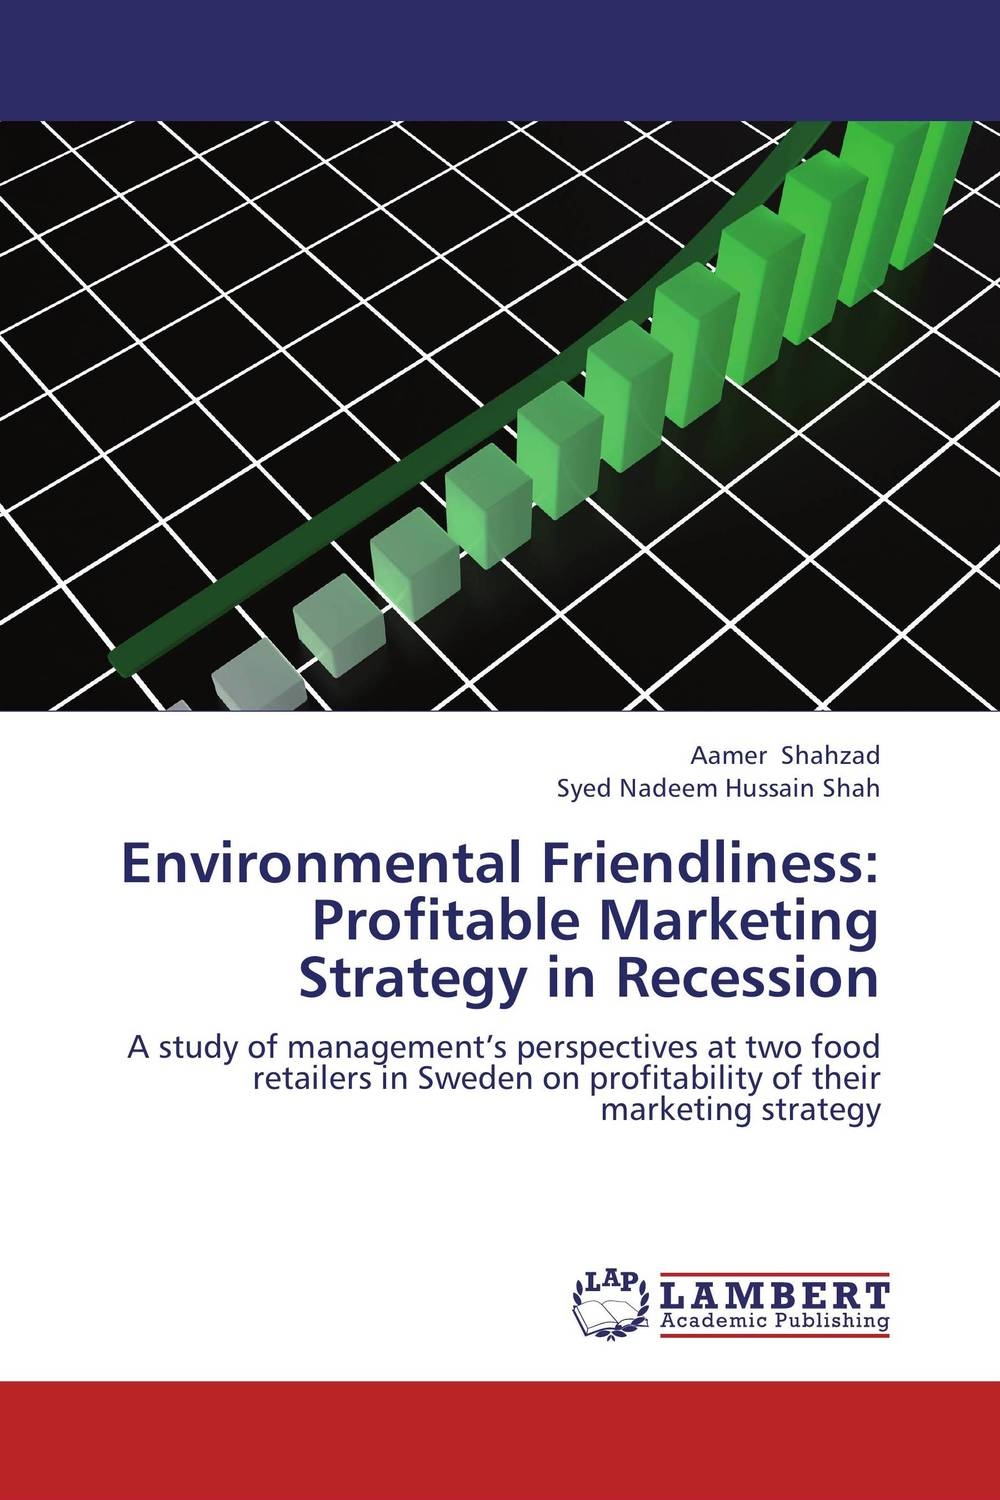 Environmental Friendliness: Profitable Marketing Strategy in Recession